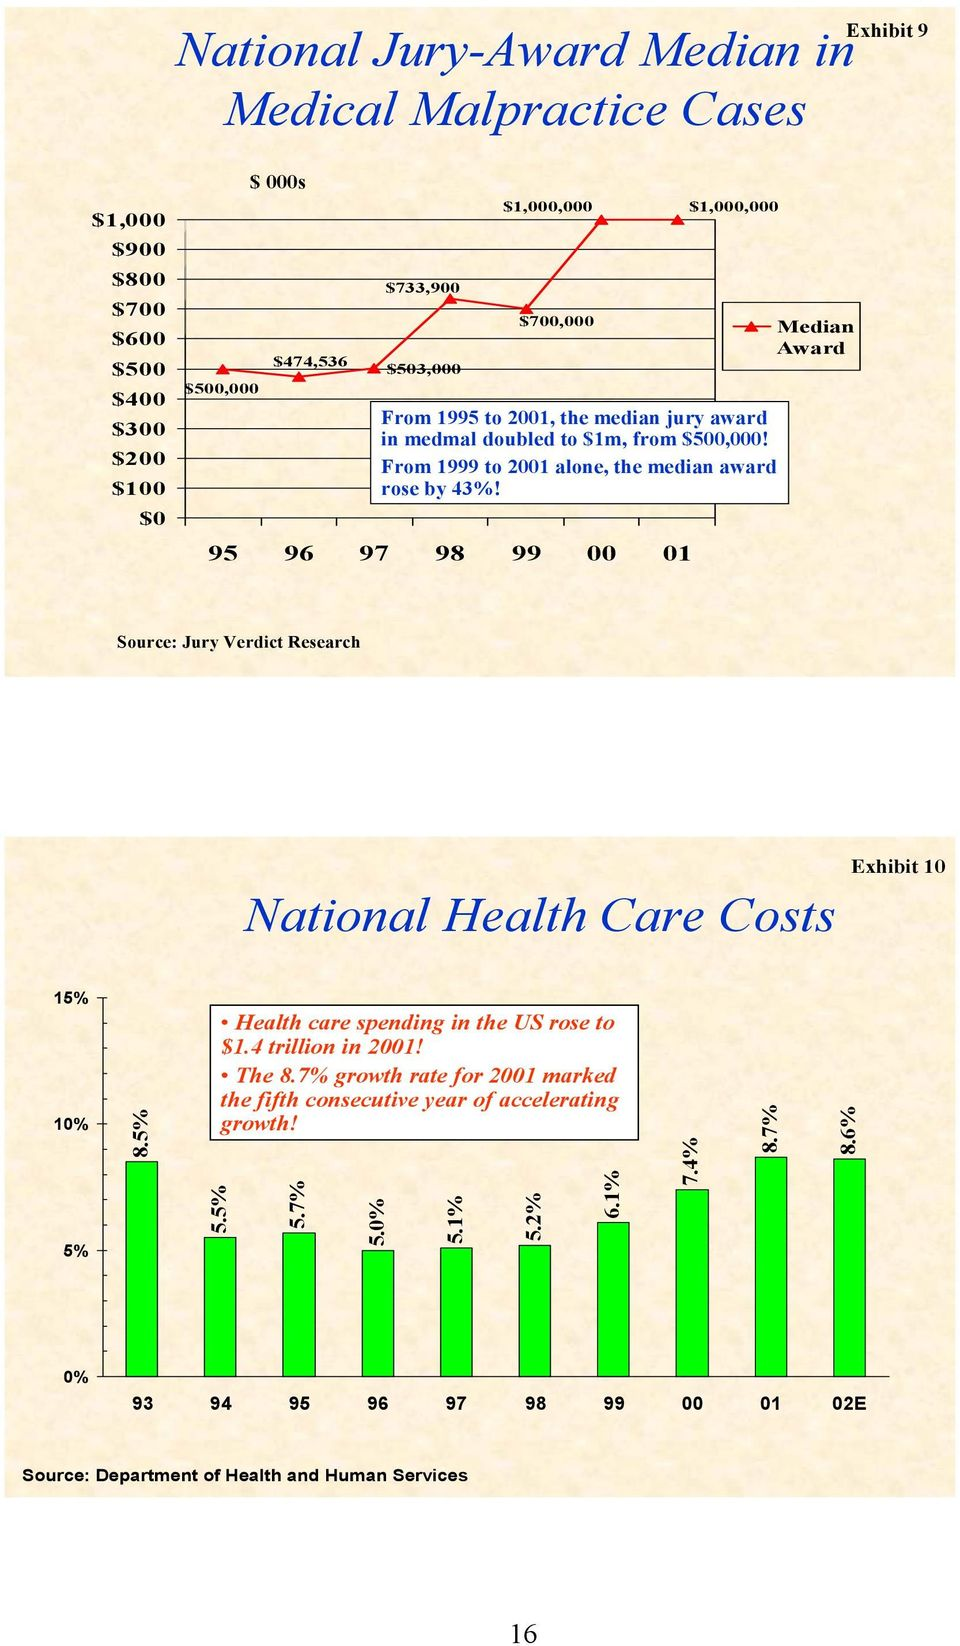 95 96 97 98 99 00 01 Median Award Source: Jury Verdict Research National Health Care Costs Exhibit 10 15% 10% 5% 8.5% 5.5% Health care spending in the US rose to $1.